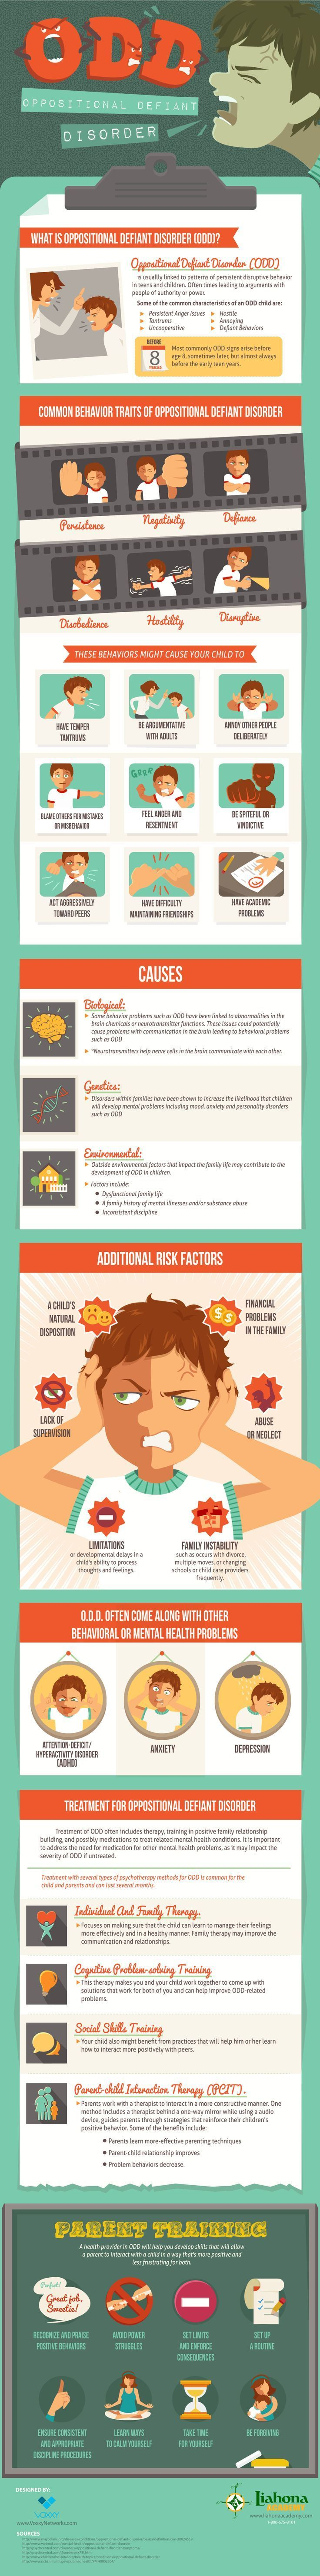 [Infographic] Helping your child with Oppositional Defiant Disorder (ODD)